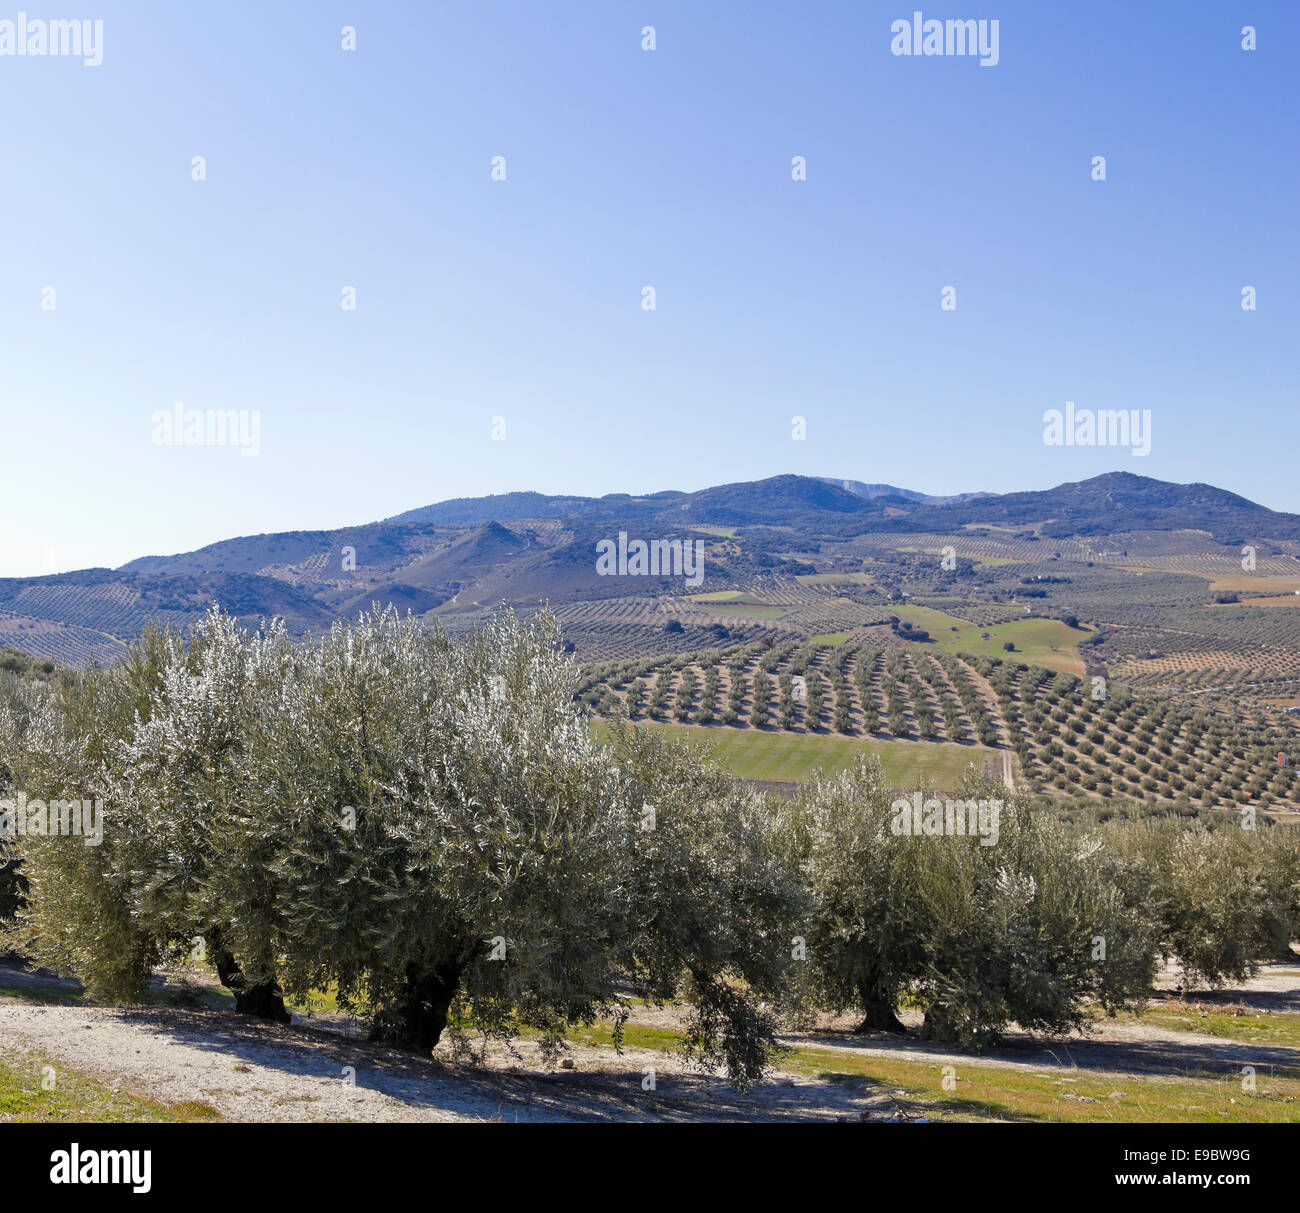 Olive orchards in the Andalusia region of Spain. - Stock Image